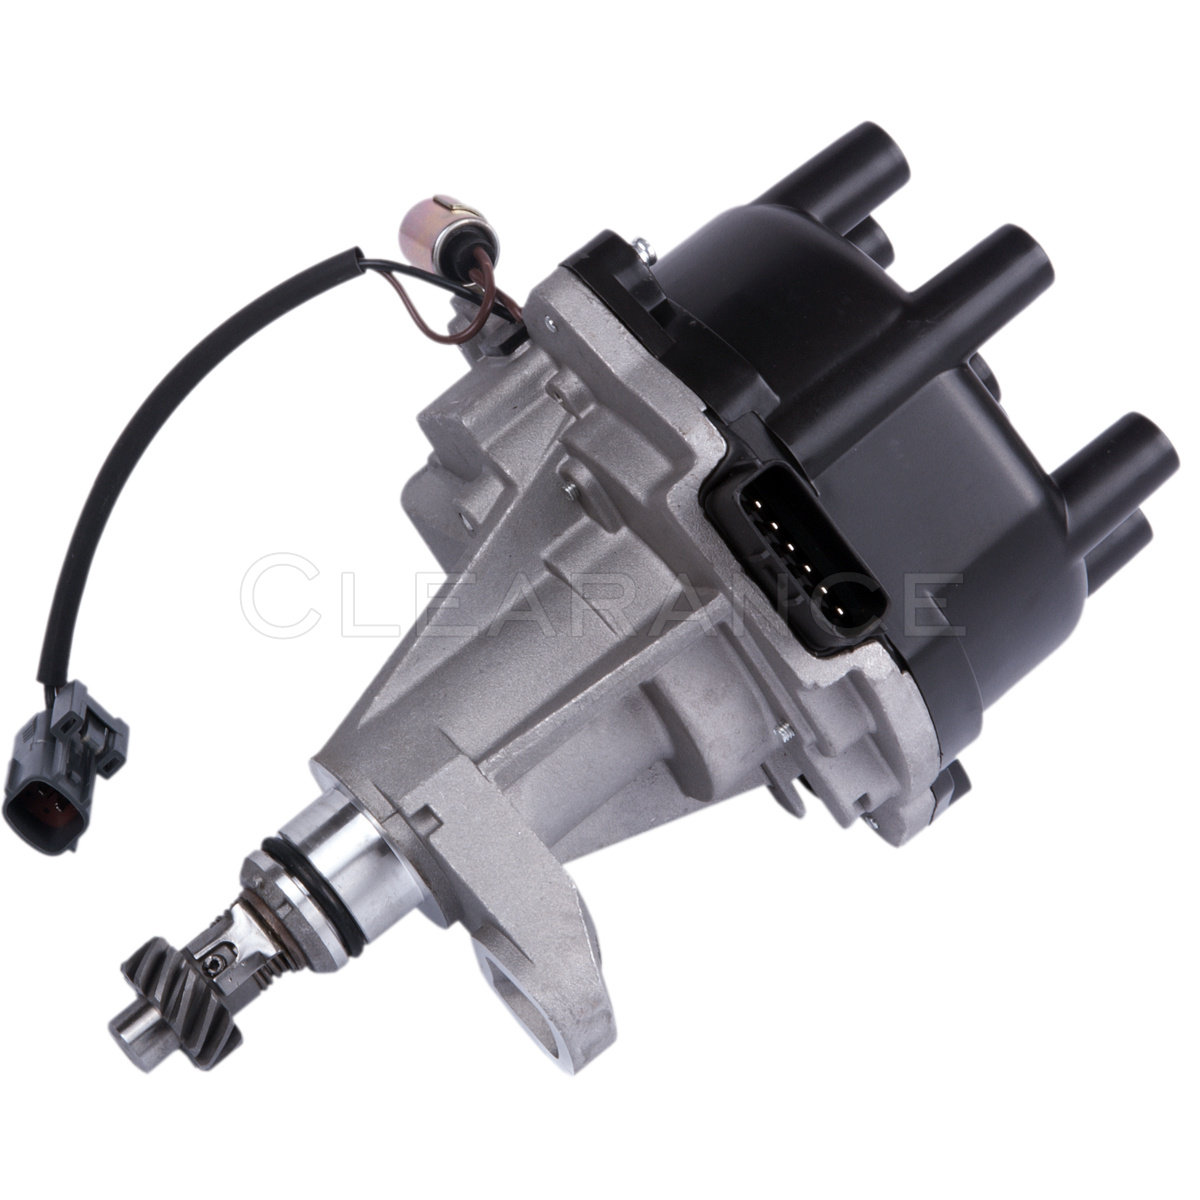 Distributor W Ignition Coil 2000 2004 Frontier Xterra For